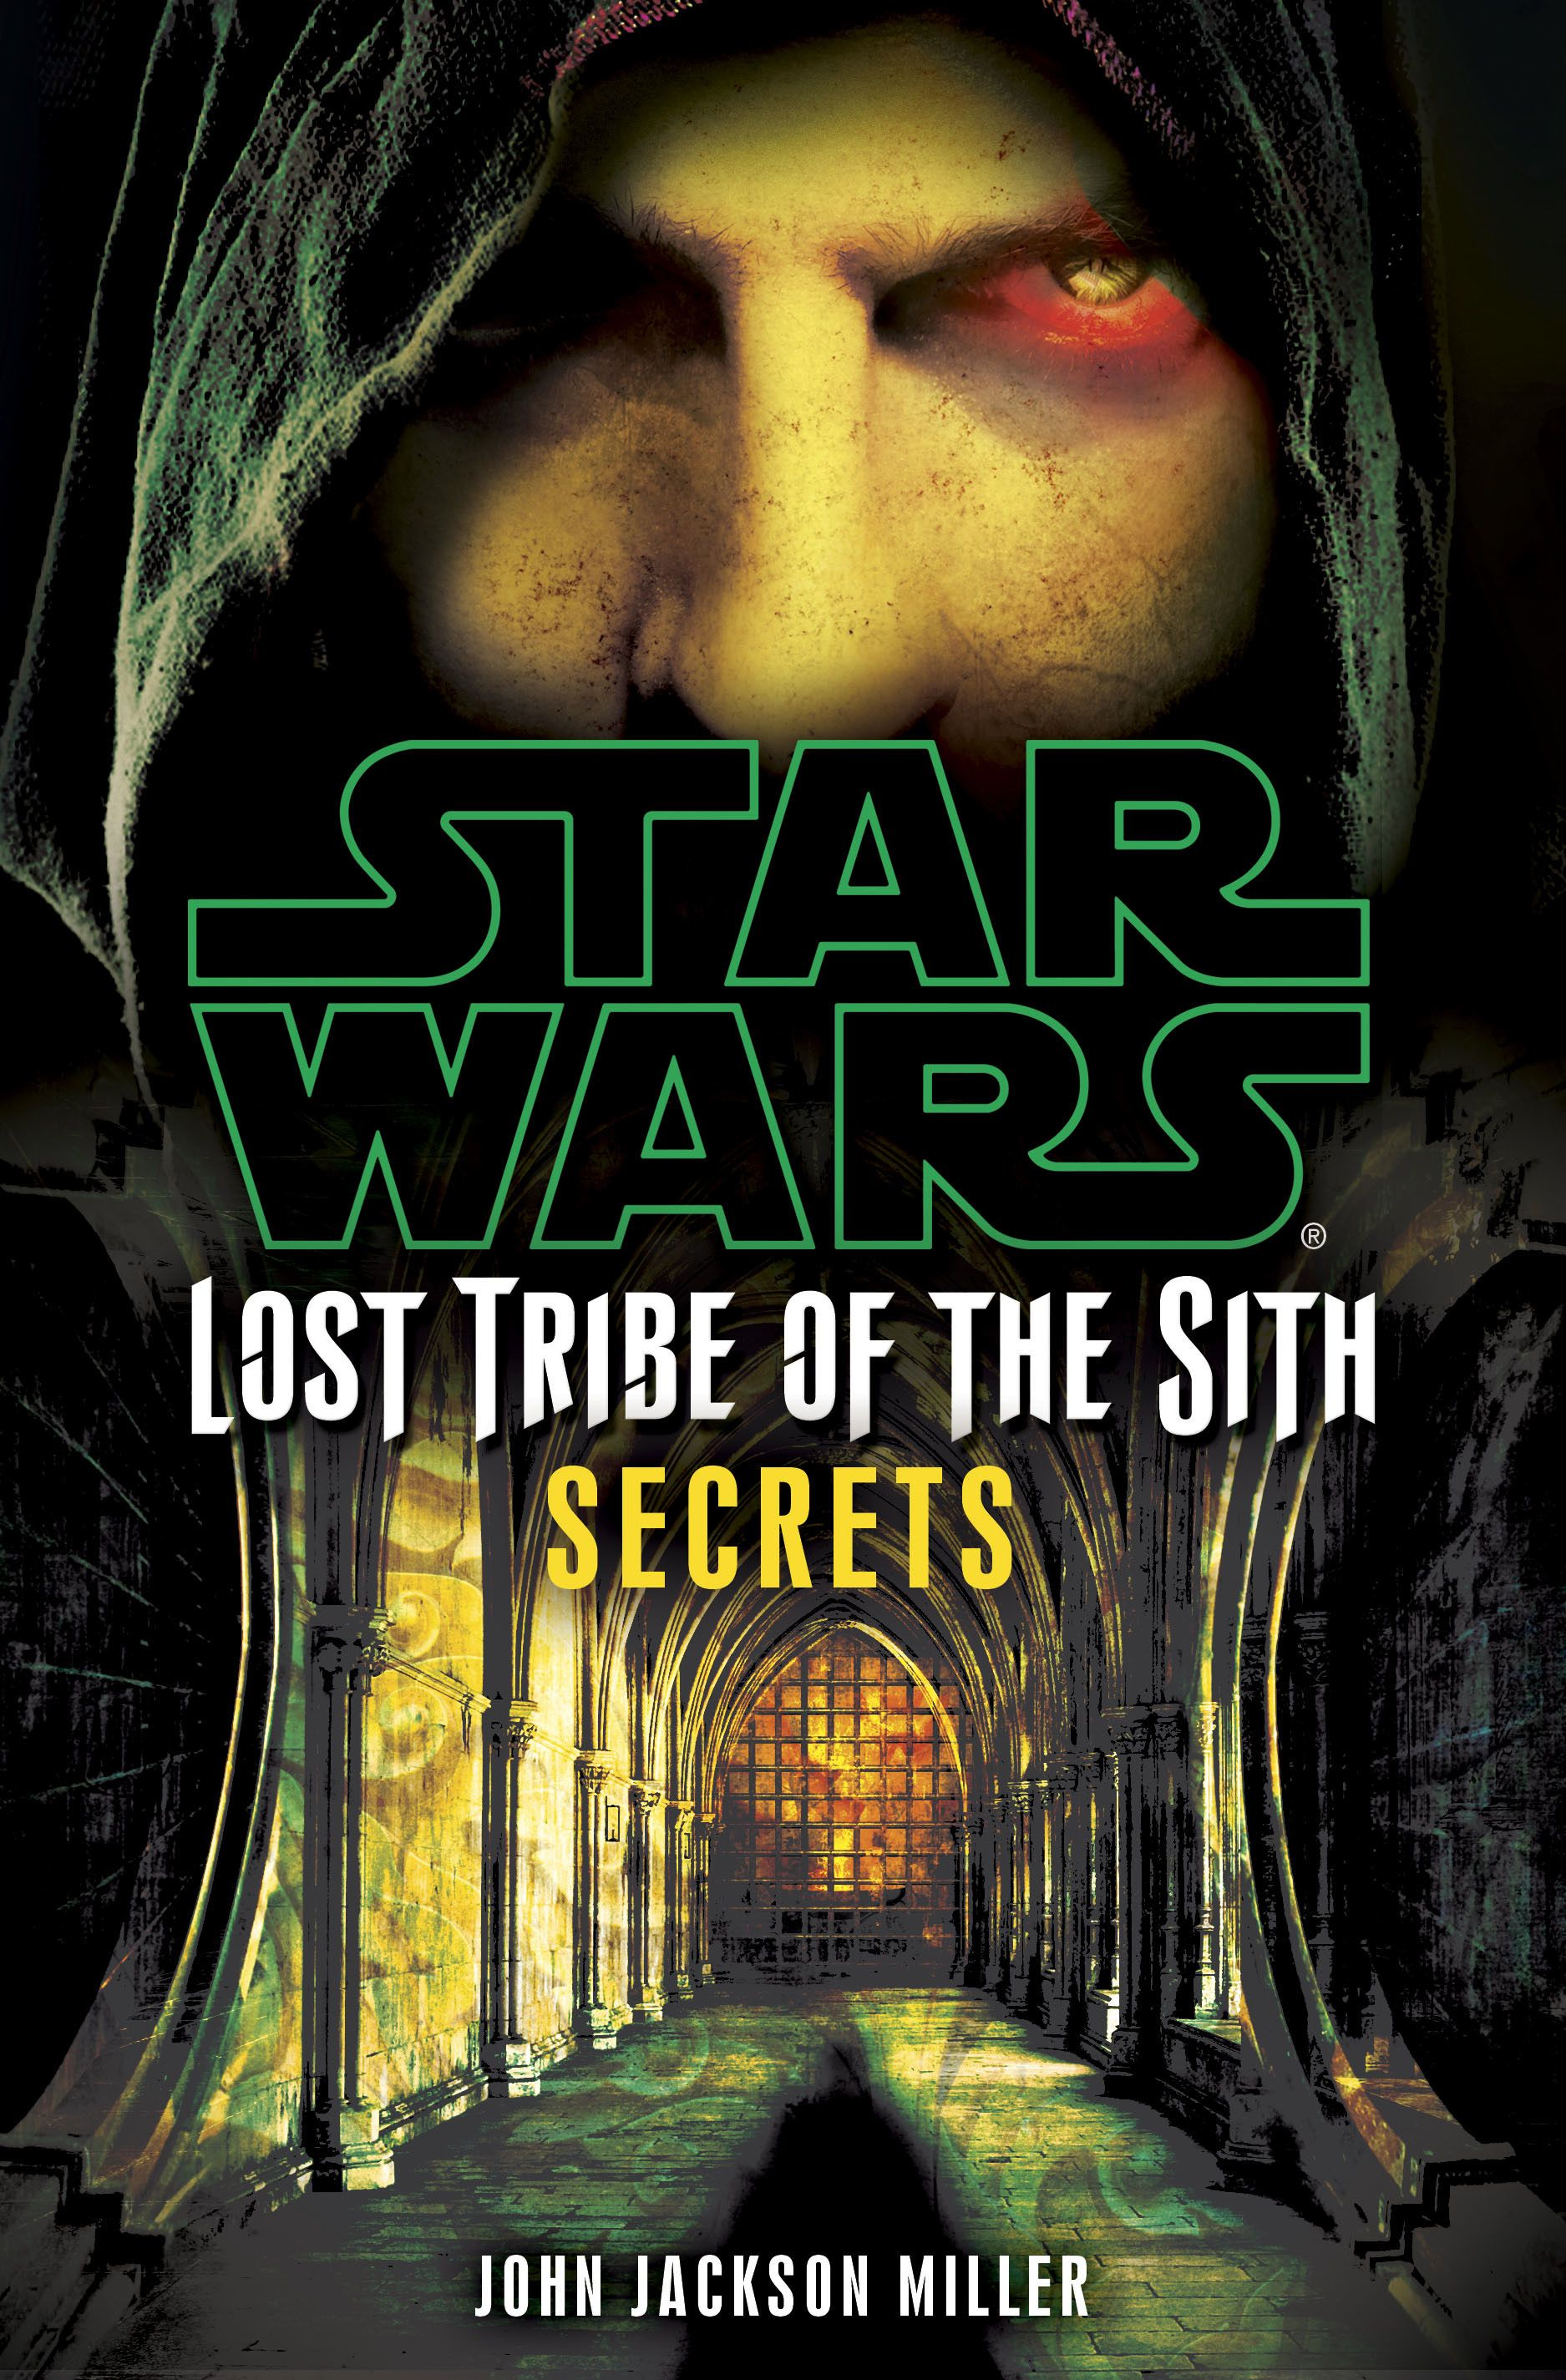 Star Wars Lost Tribe of the Sith: Secrets